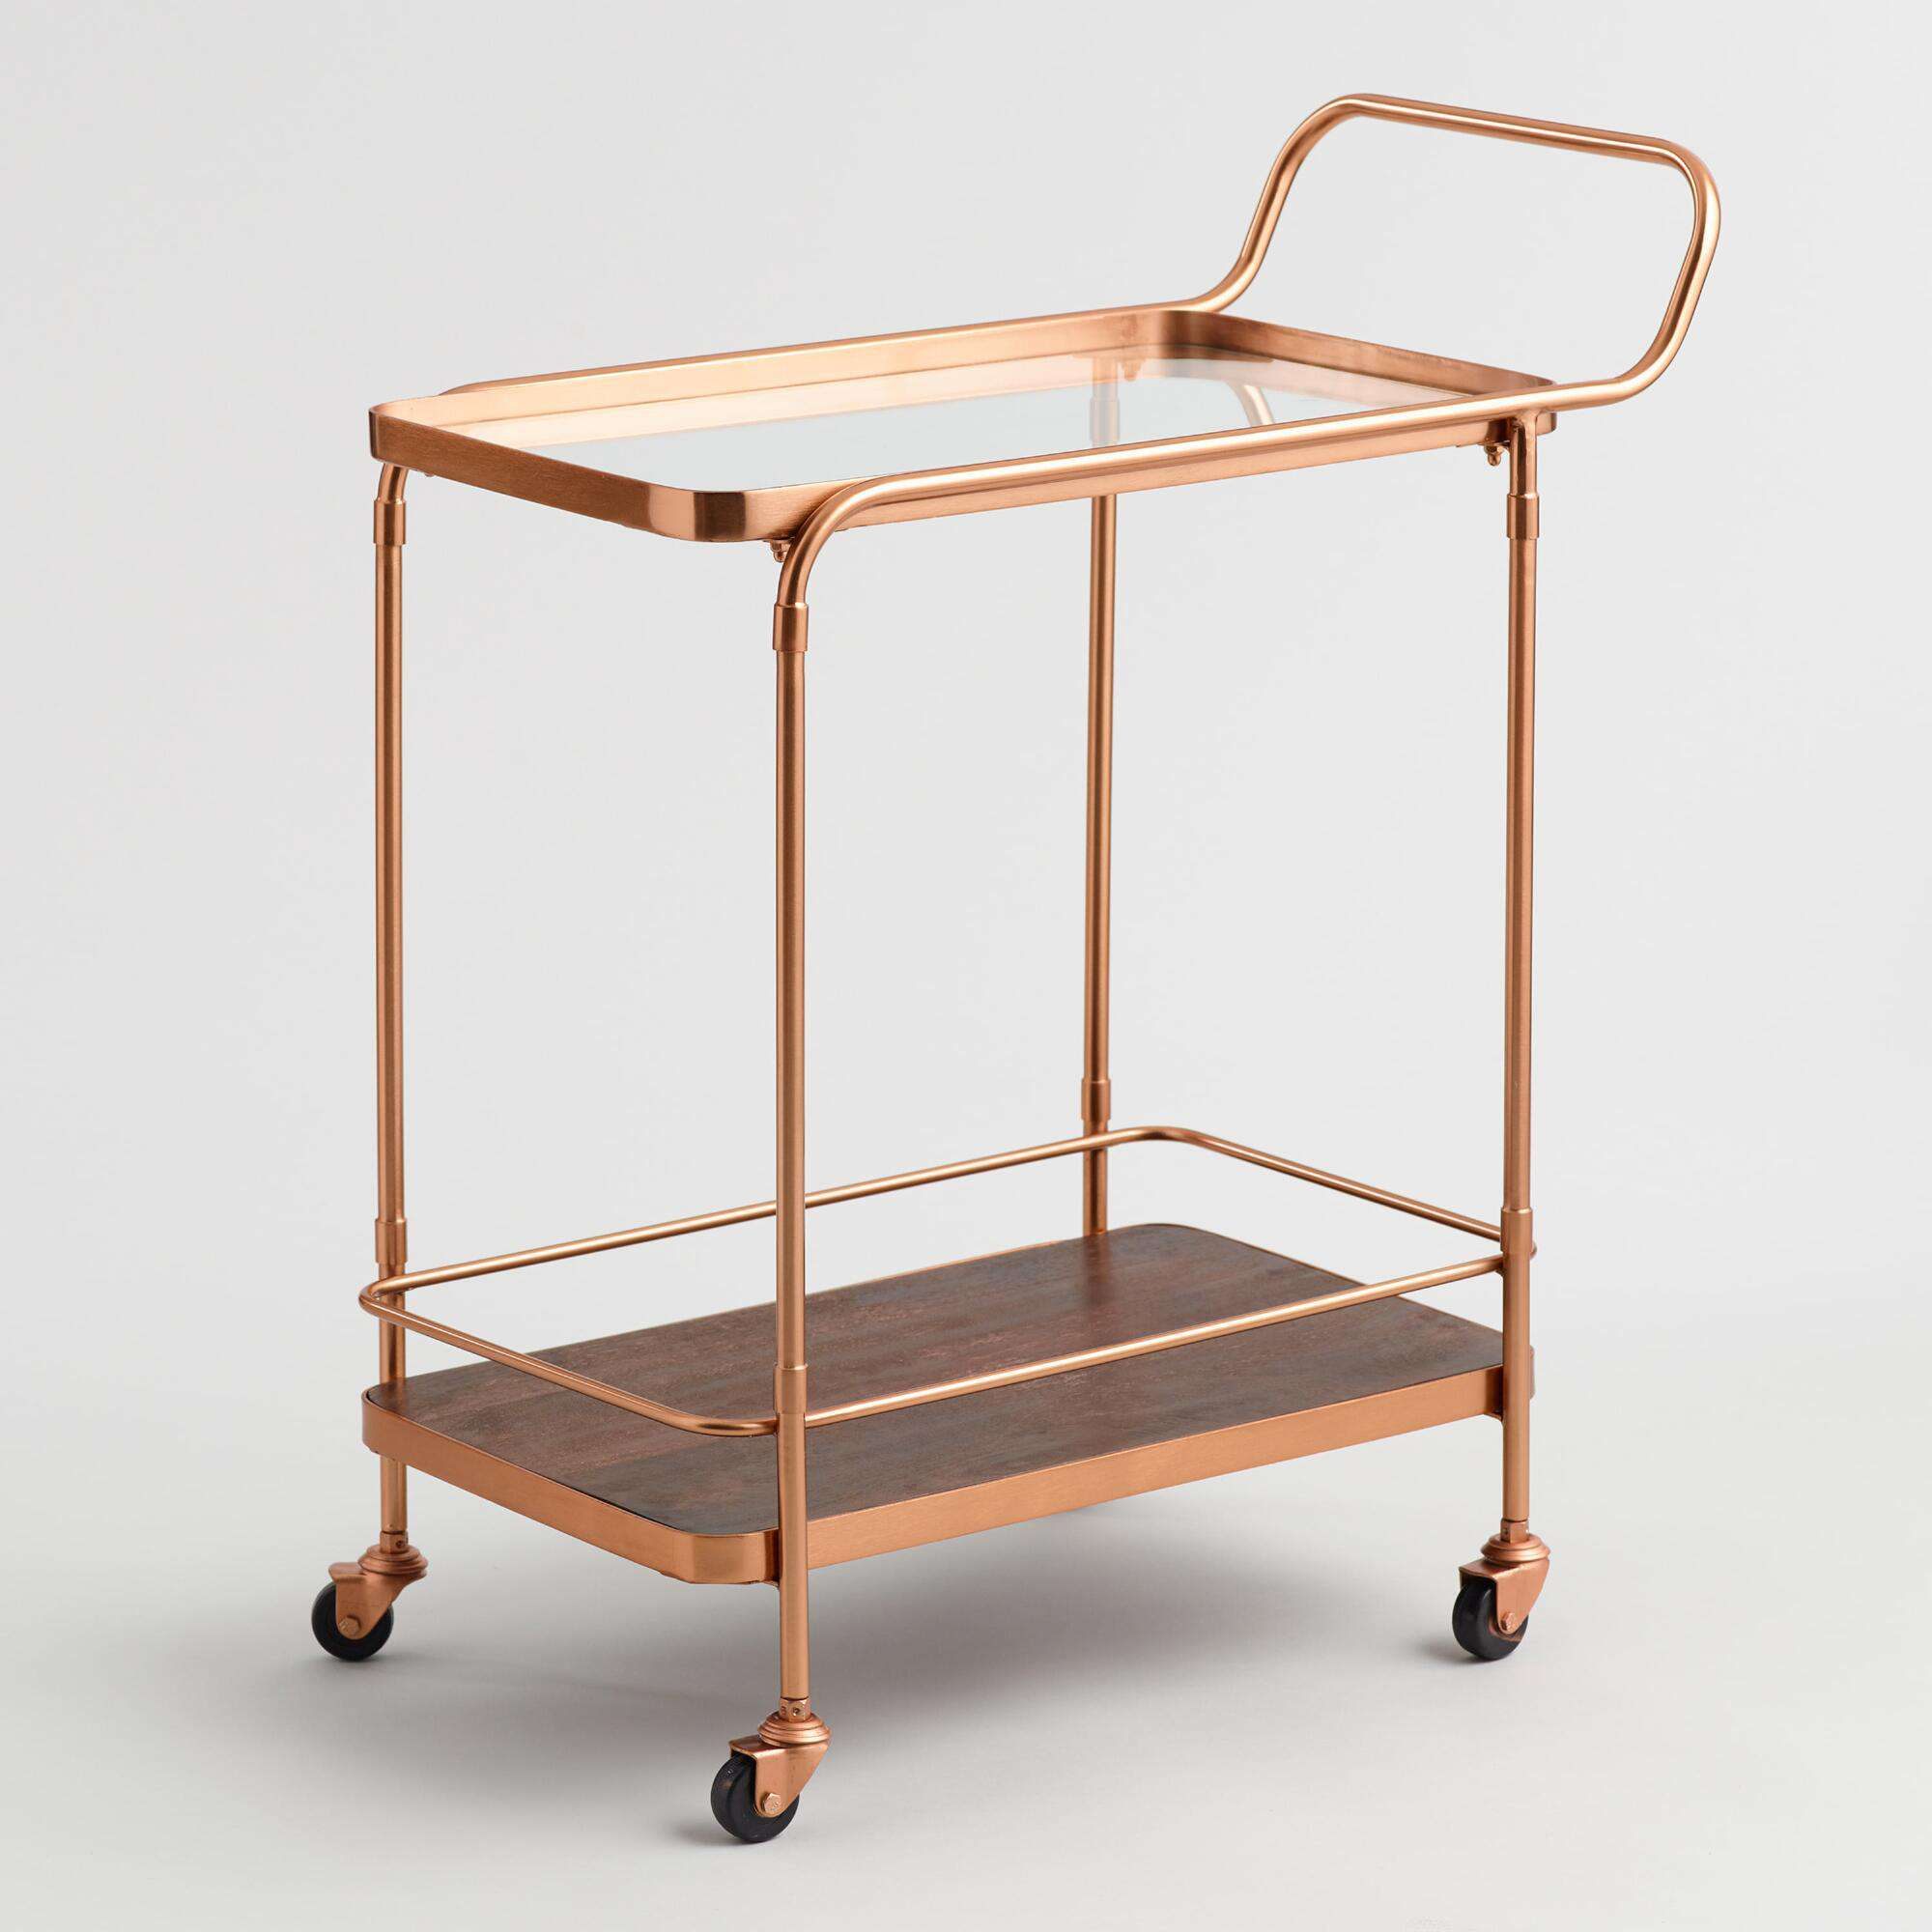 Copper and wood bar cart